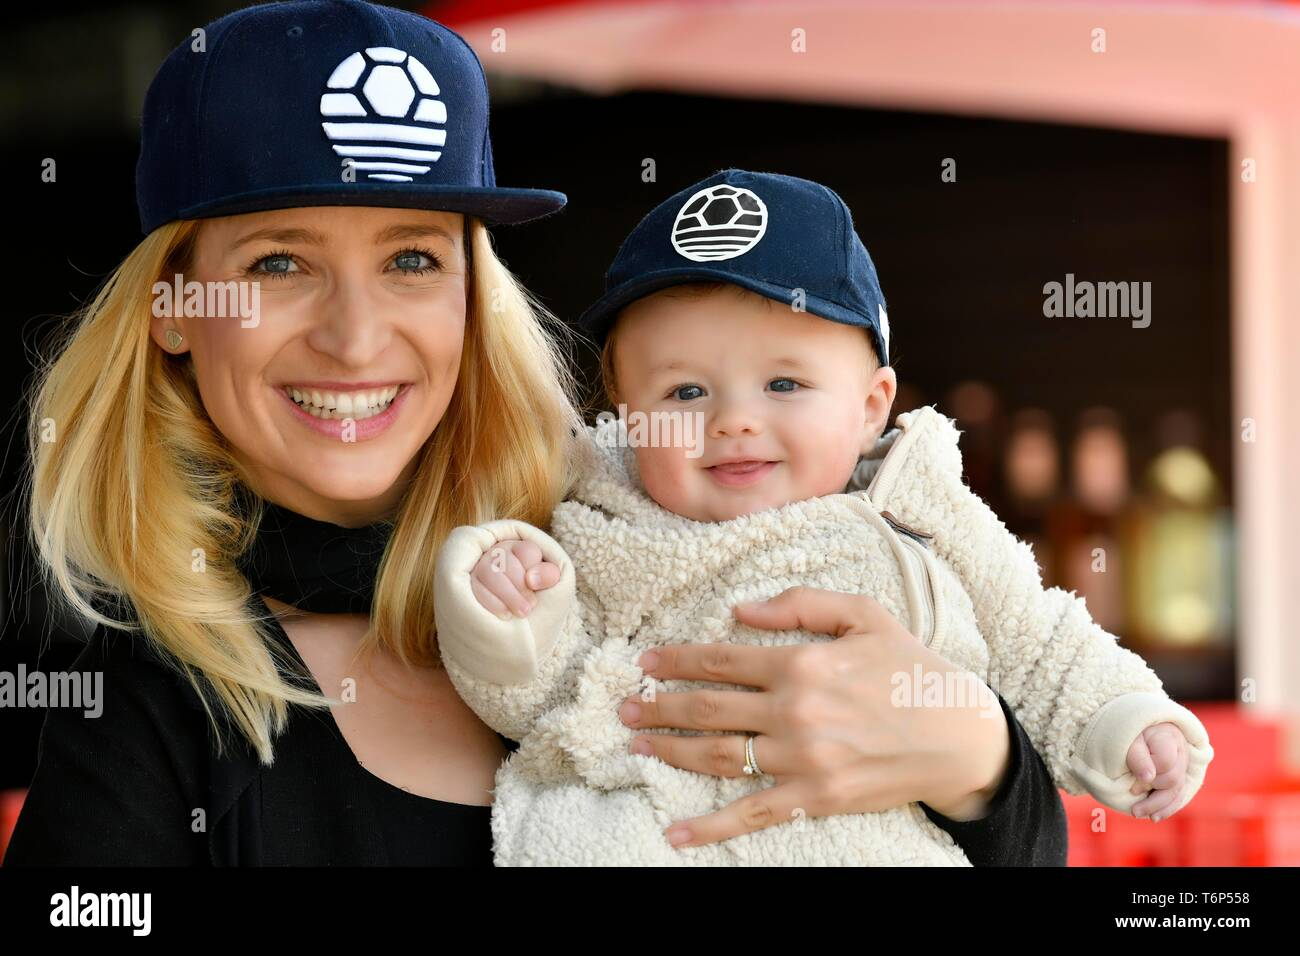 Mother and baby, 5 months, with the same caps, laugh, Baden-Wurttemberg, Germany - Stock Image